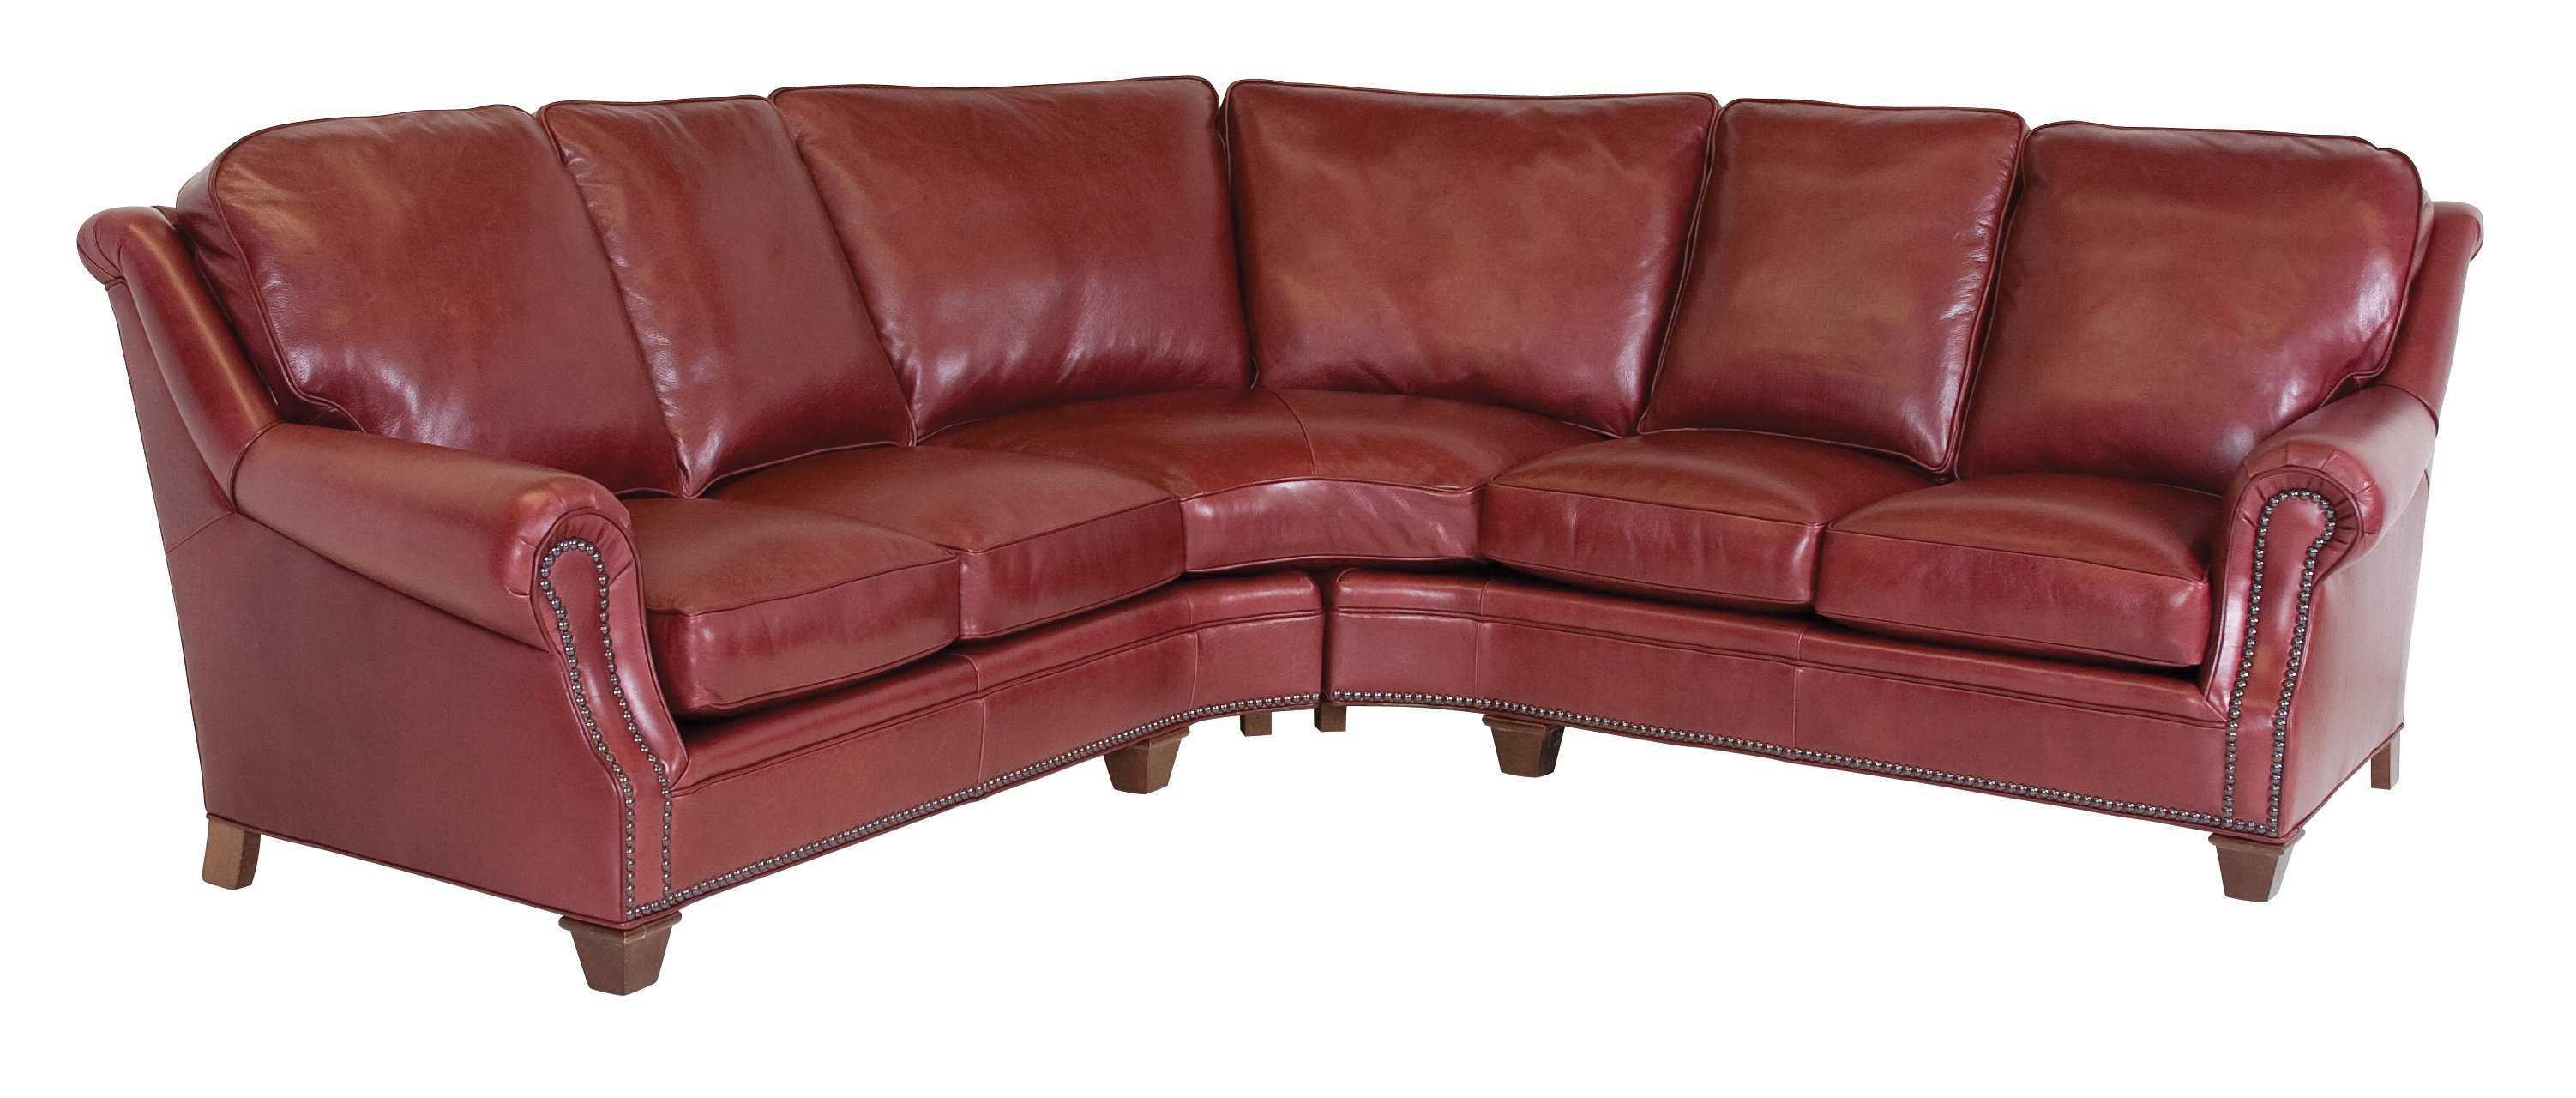 Sofas In Portsmouth Www Sudarshanaloka Org Palliser Furniture 40642  Sectional